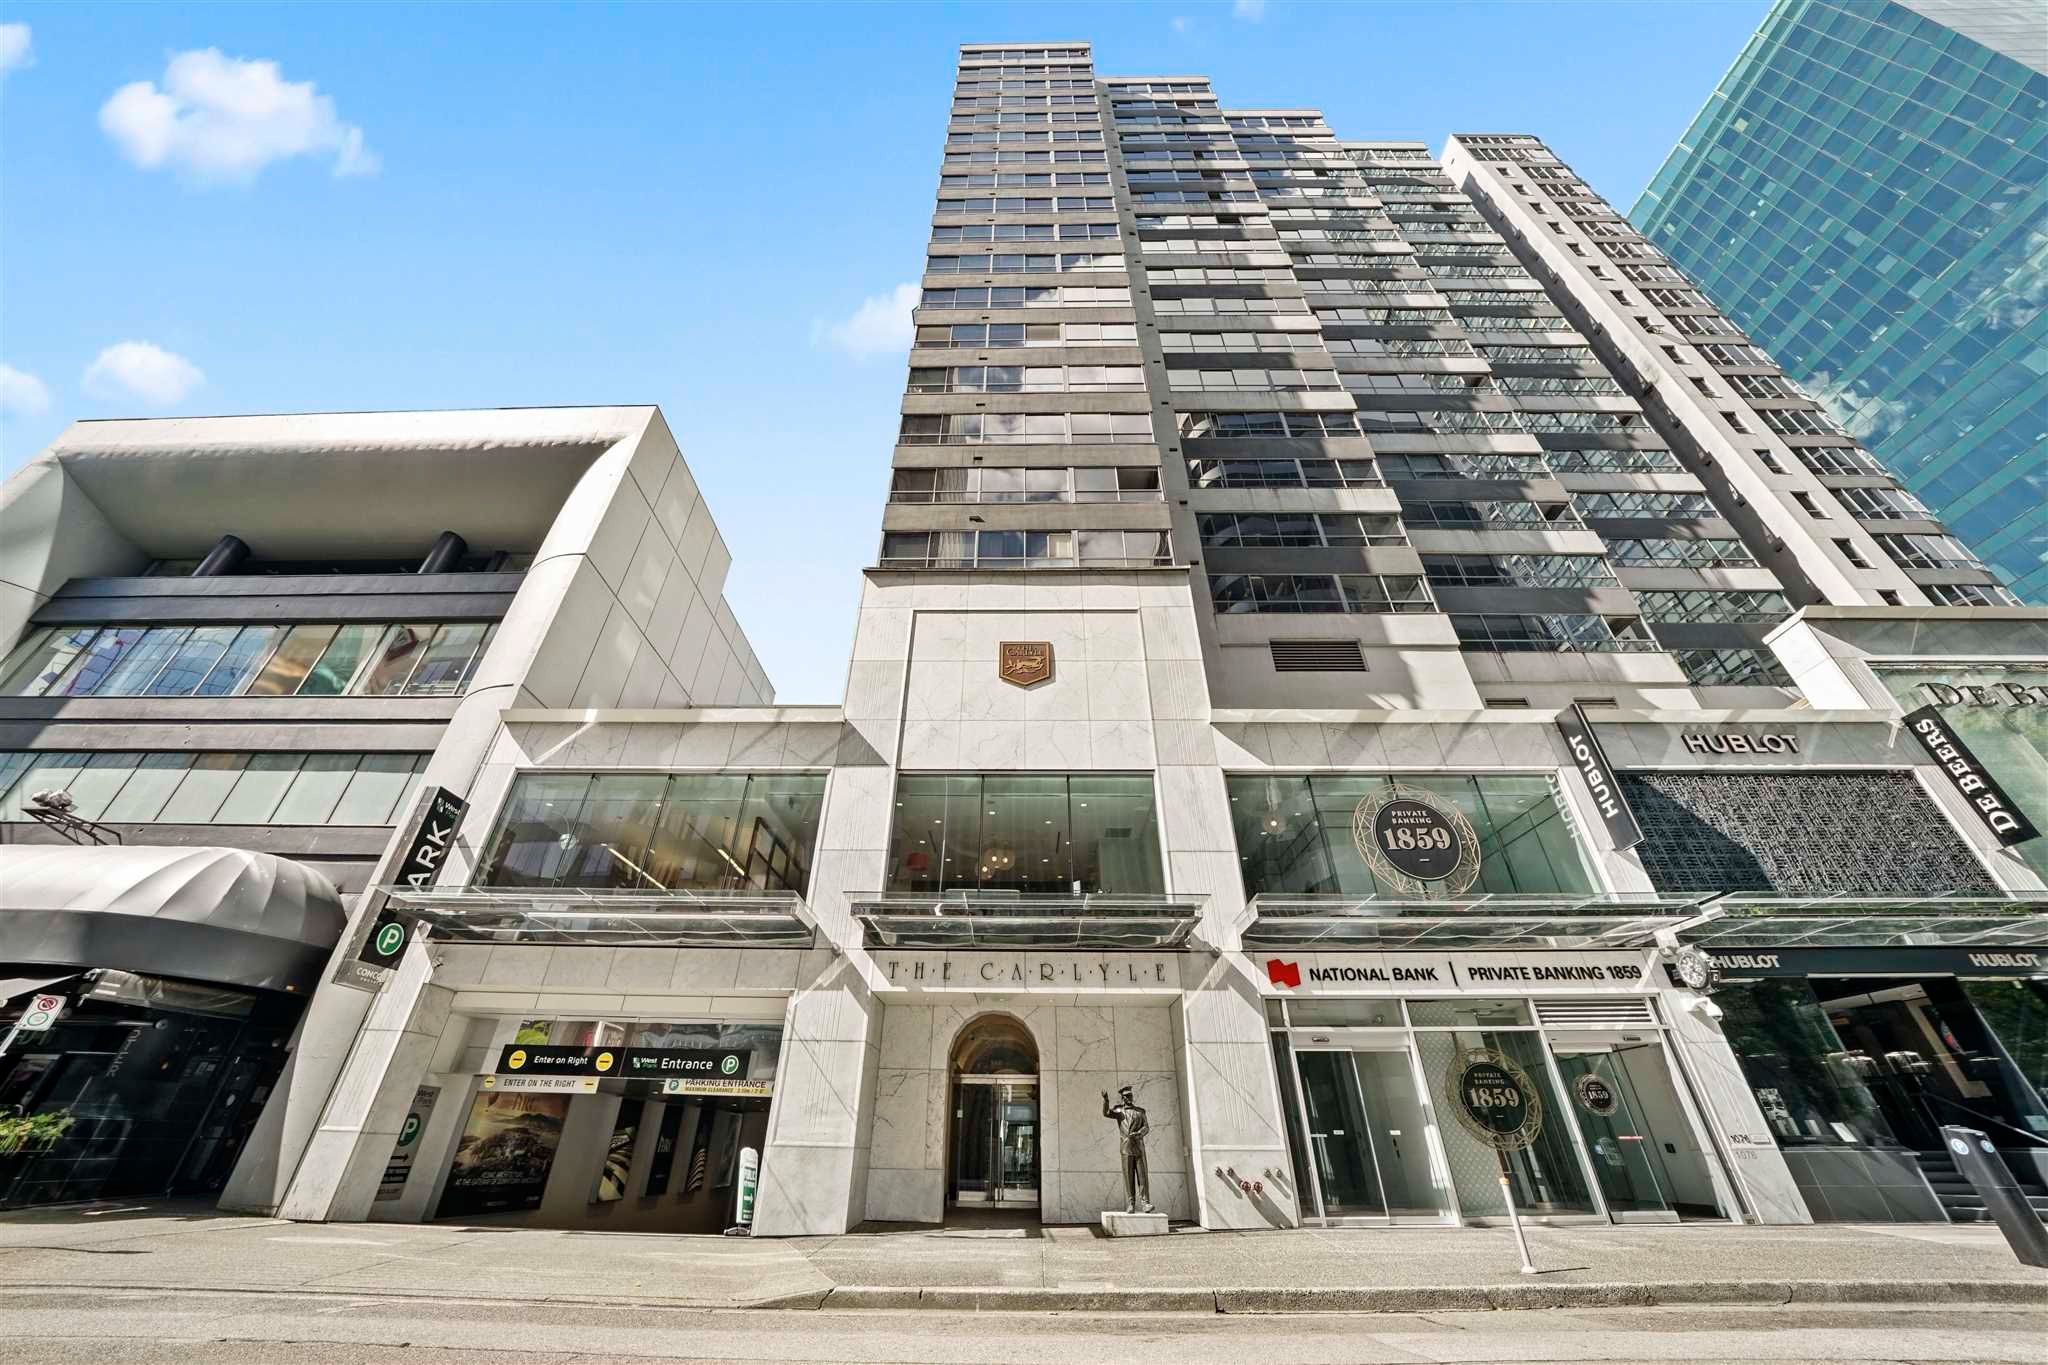 """Main Photo: 404 1060 ALBERNI Street in Vancouver: West End VW Condo for sale in """"CARLYLE"""" (Vancouver West)  : MLS®# R2595878"""